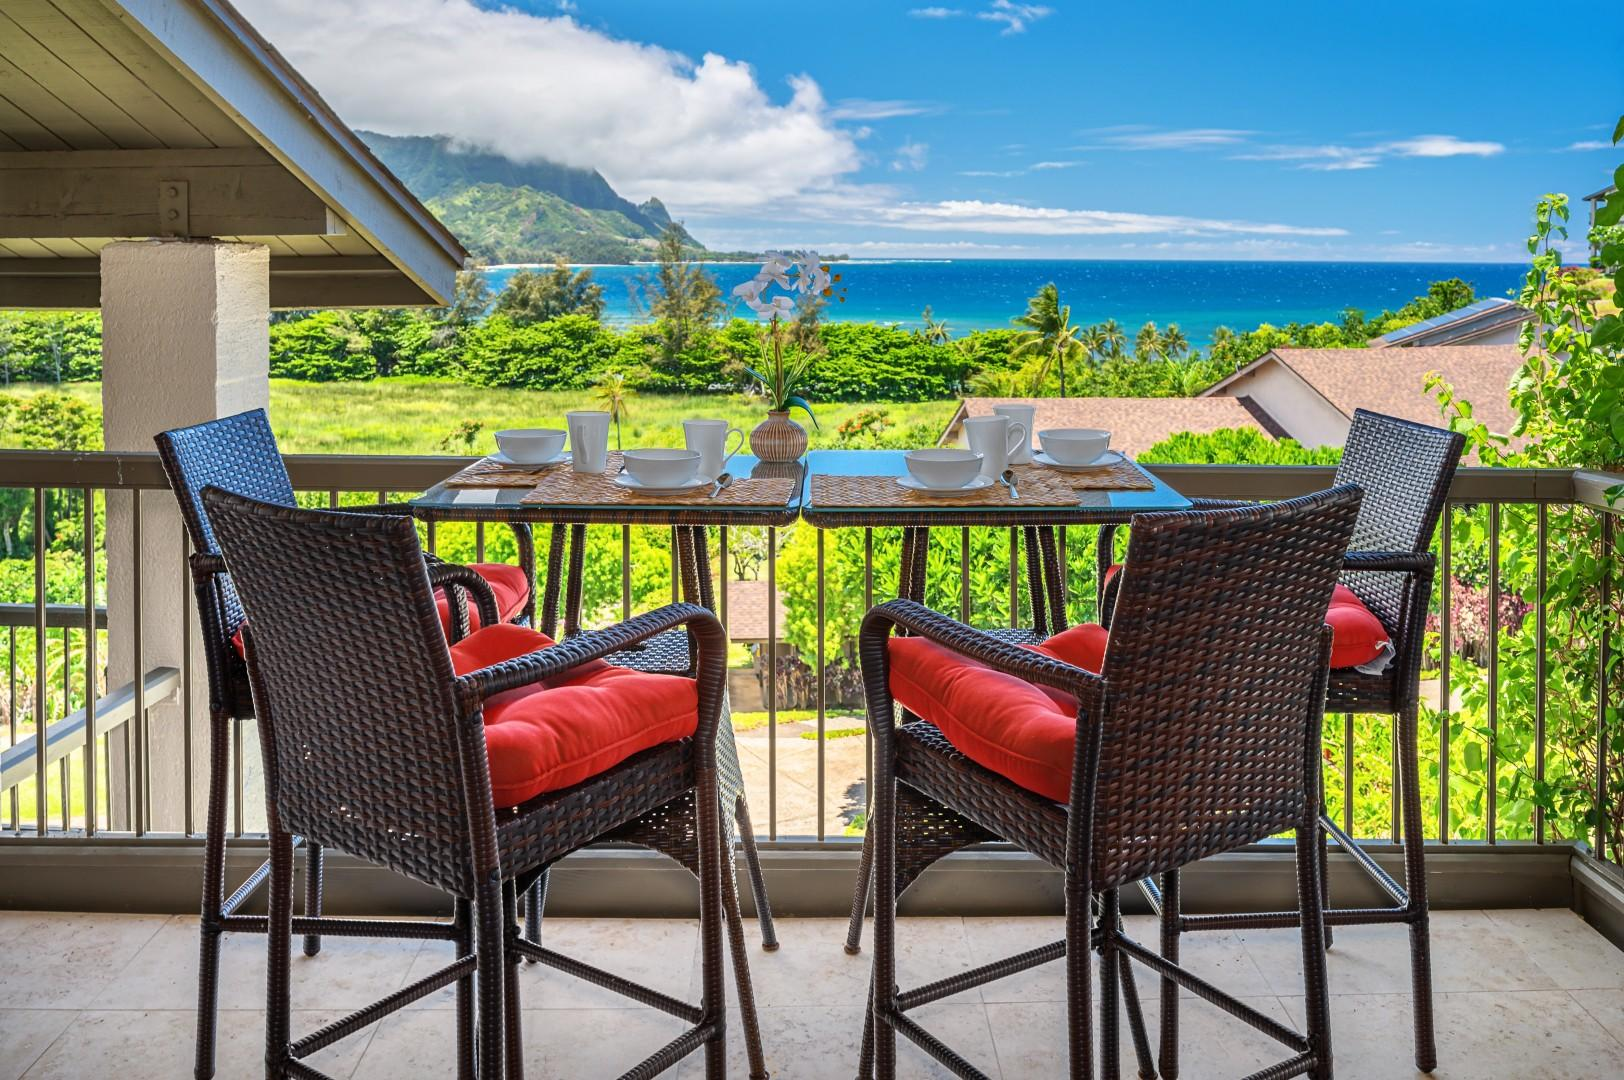 Outdoor dining with ocean and Bali Hai views.